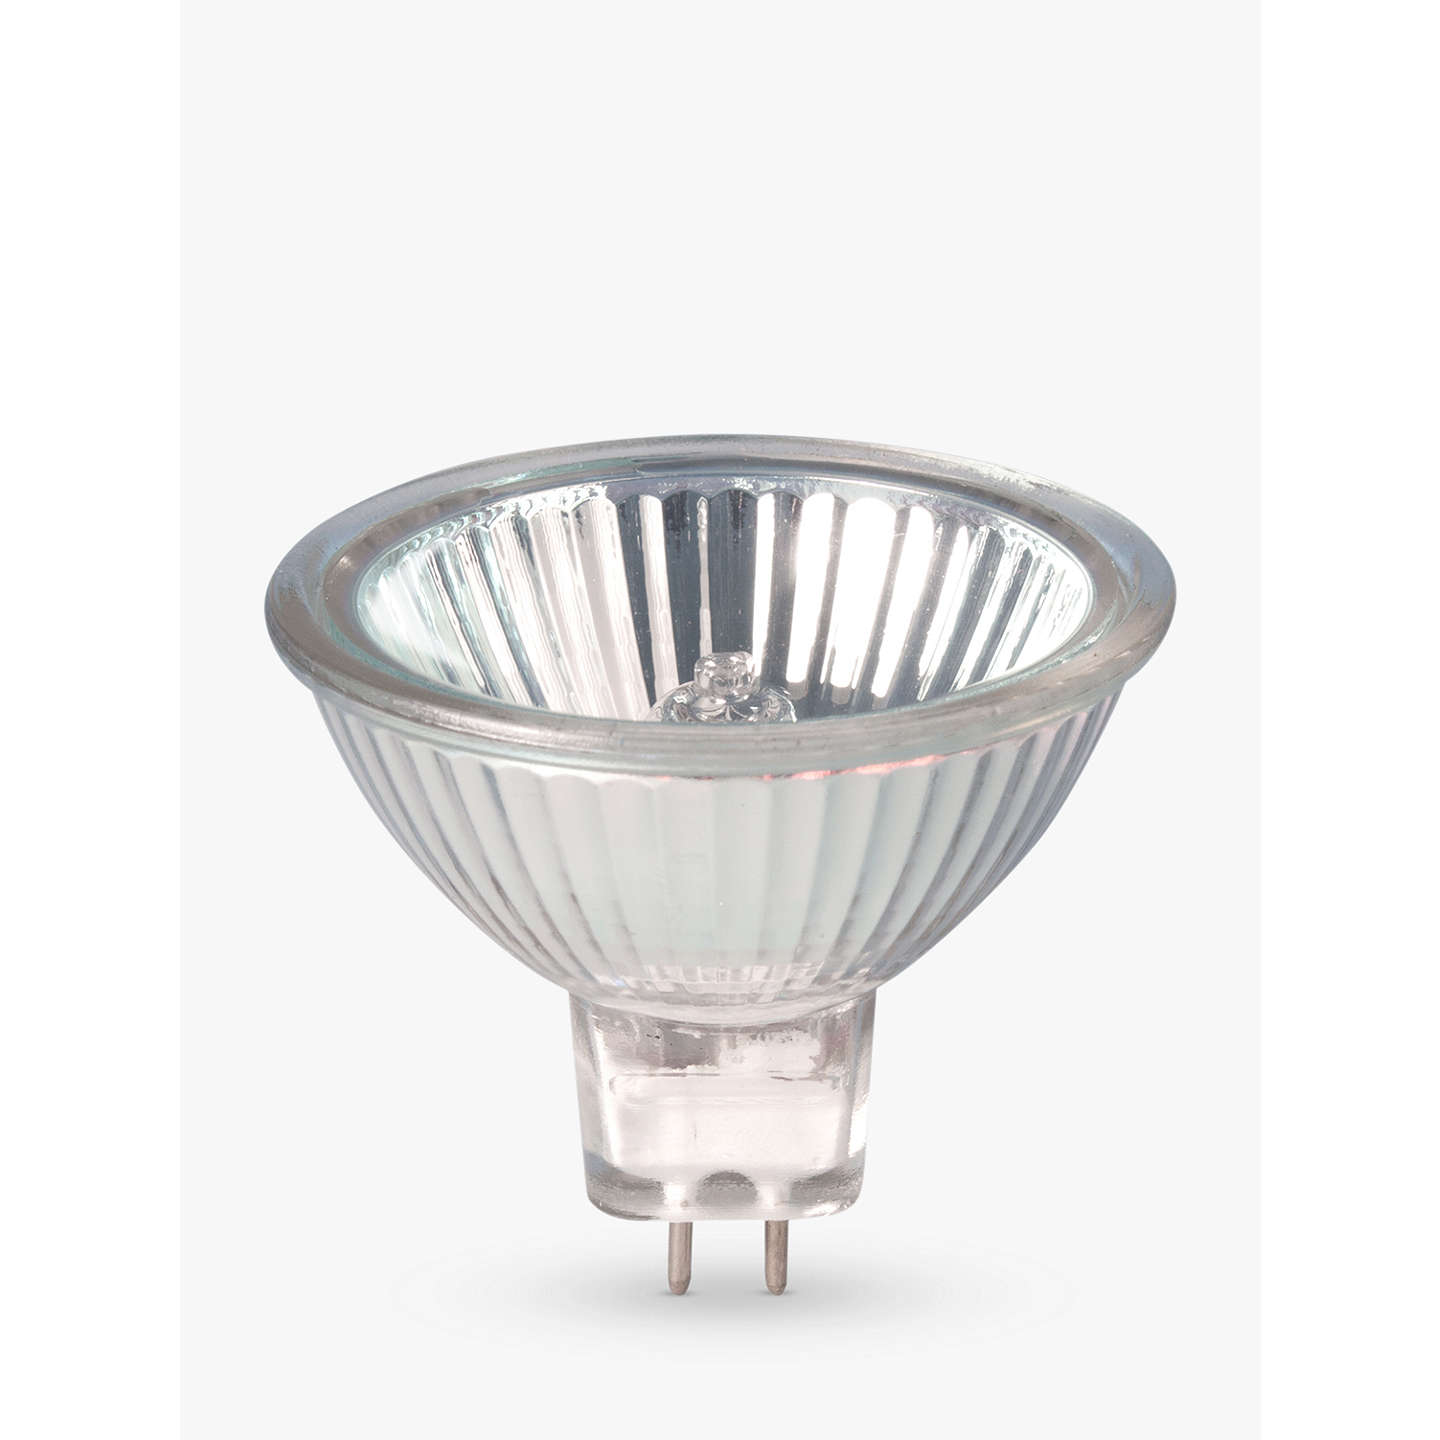 BuyCalex 35W MR16 Eco Halogen Spotlight, Pack of 3 Online at johnlewis.com